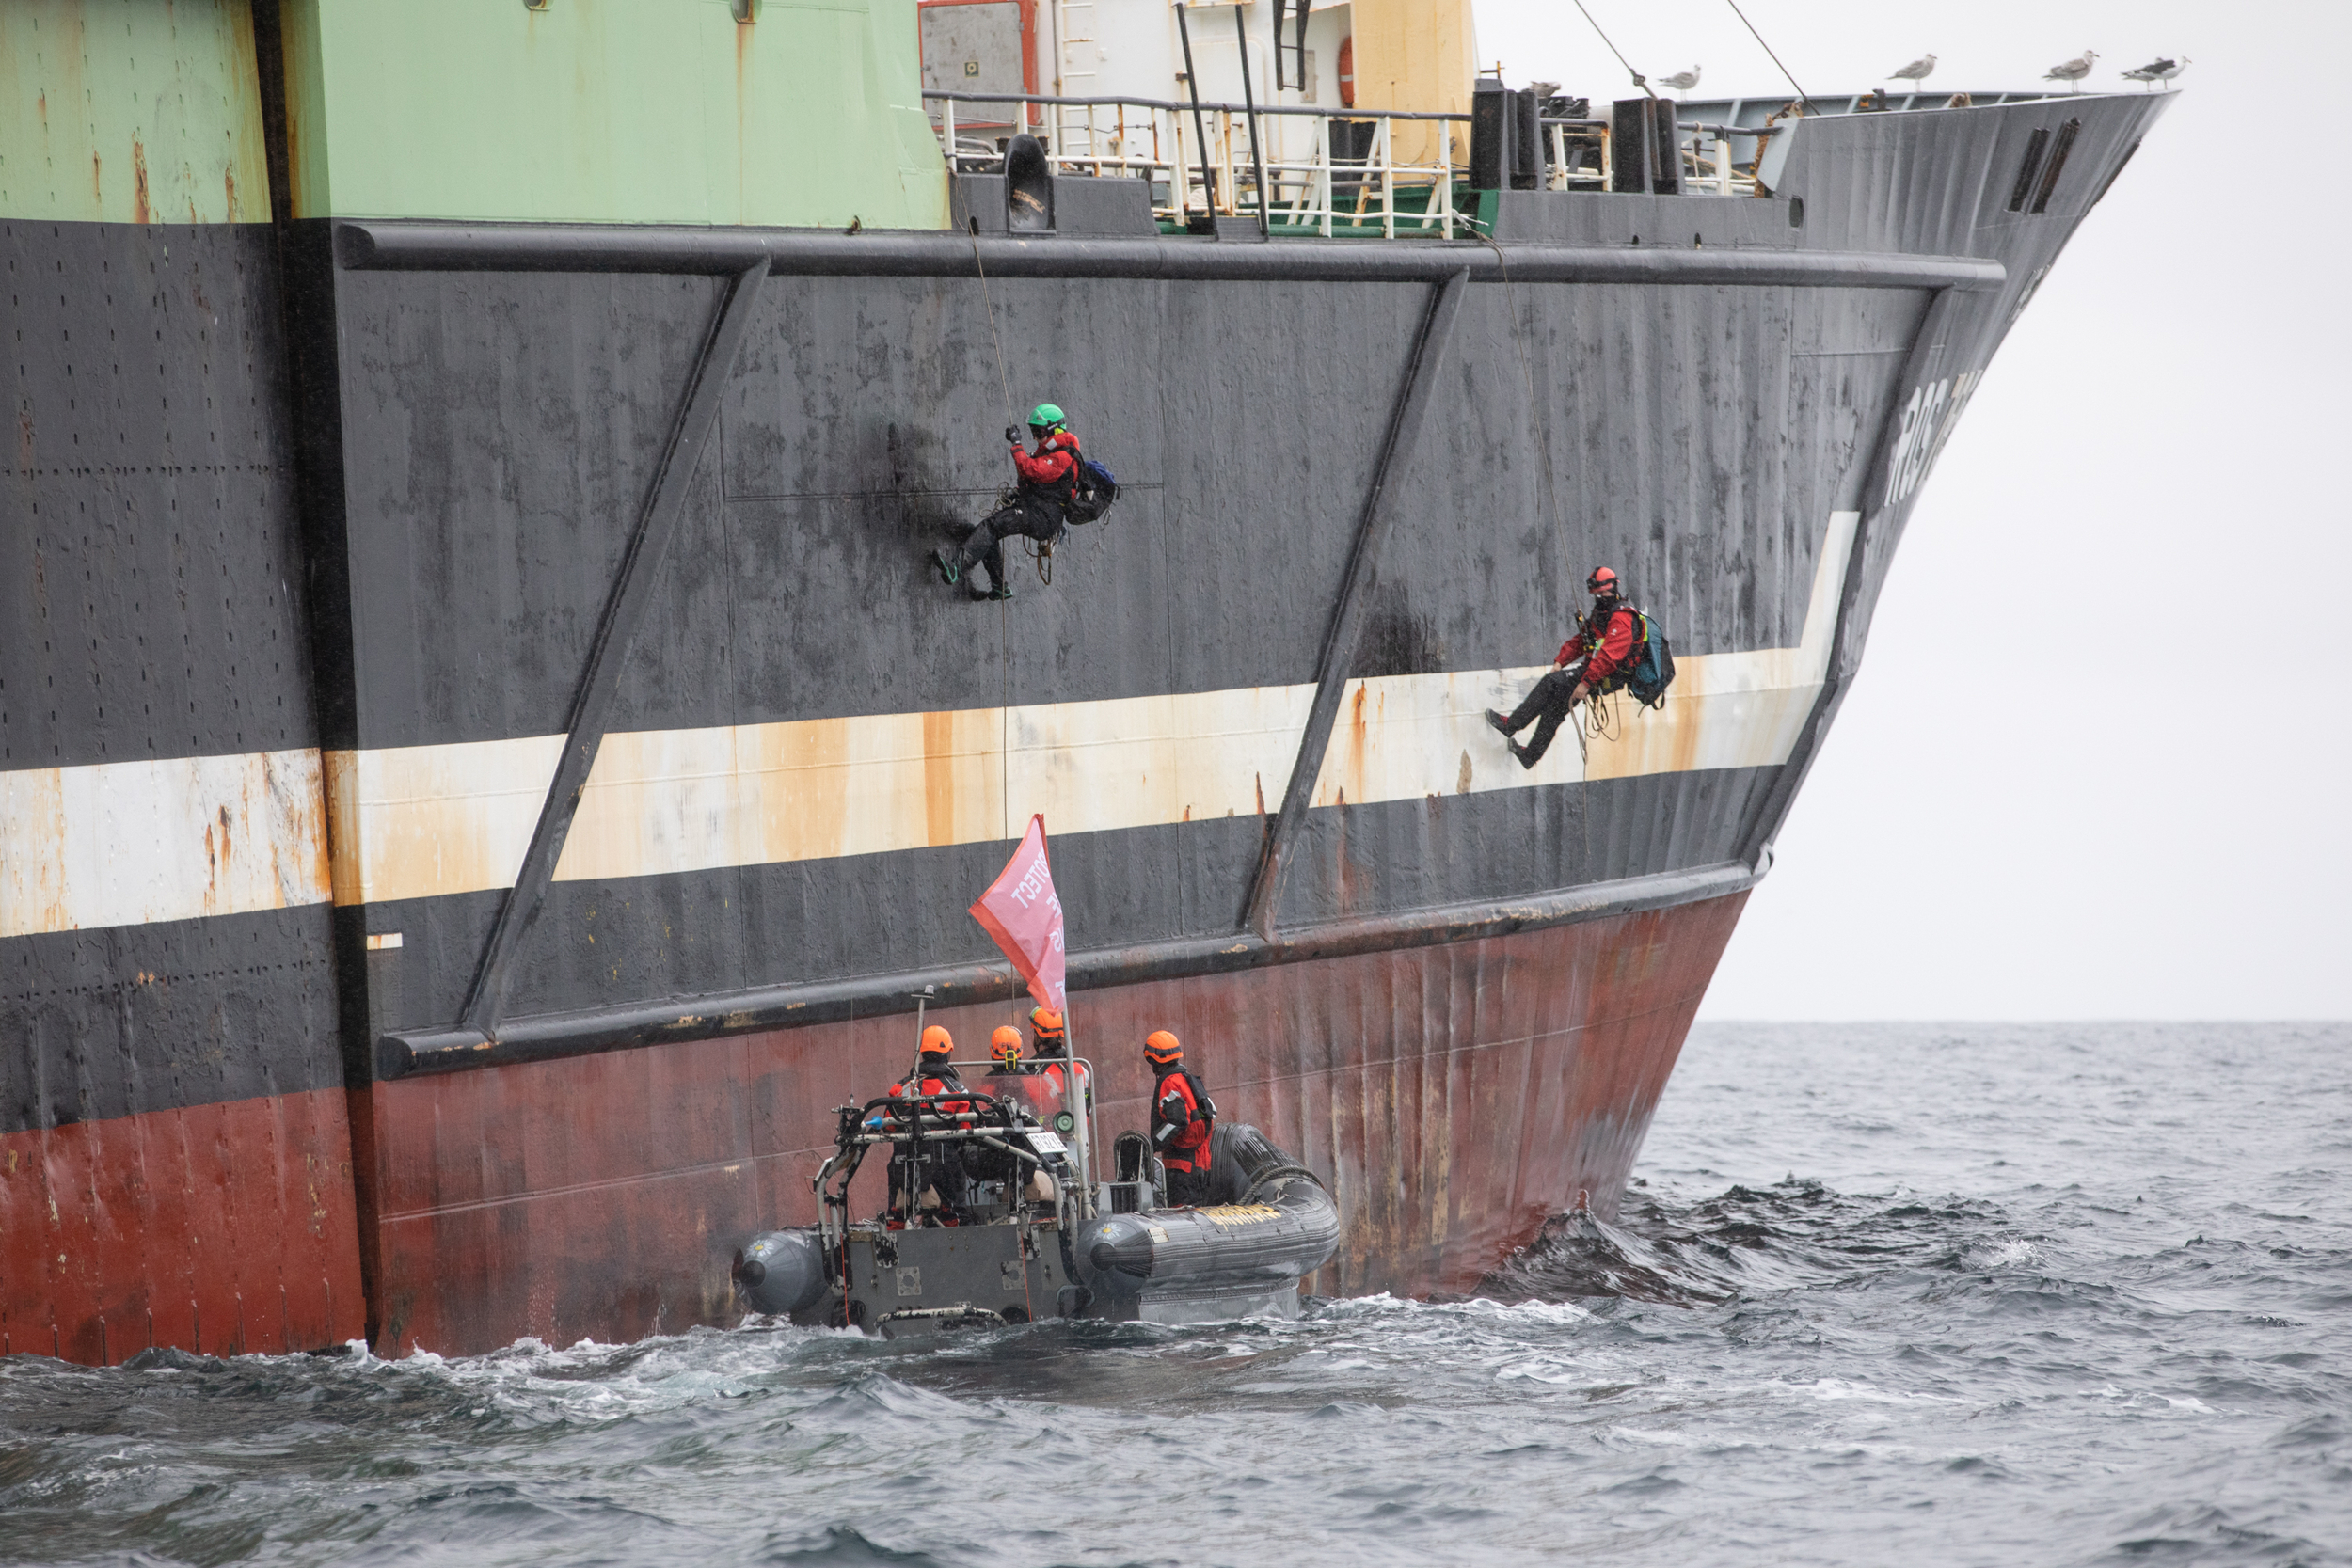 Greenpeace activists board the Helen Mary supertrawler